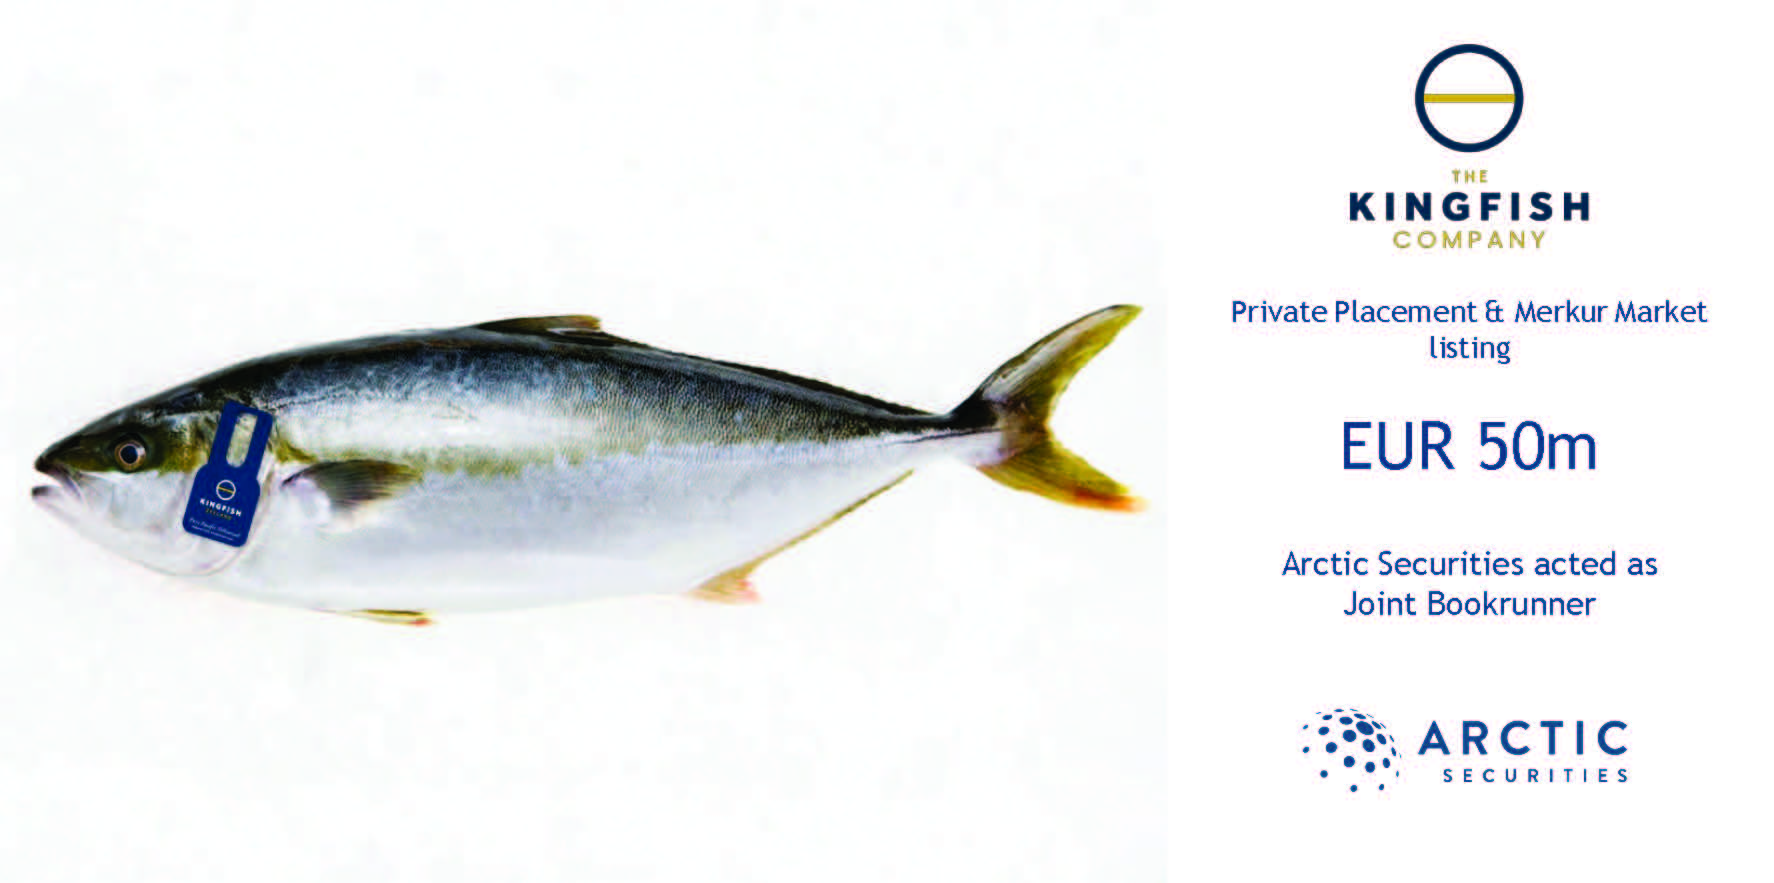 The Kingfish Company - EUR 50m - Private Placement & Merkur Market listing